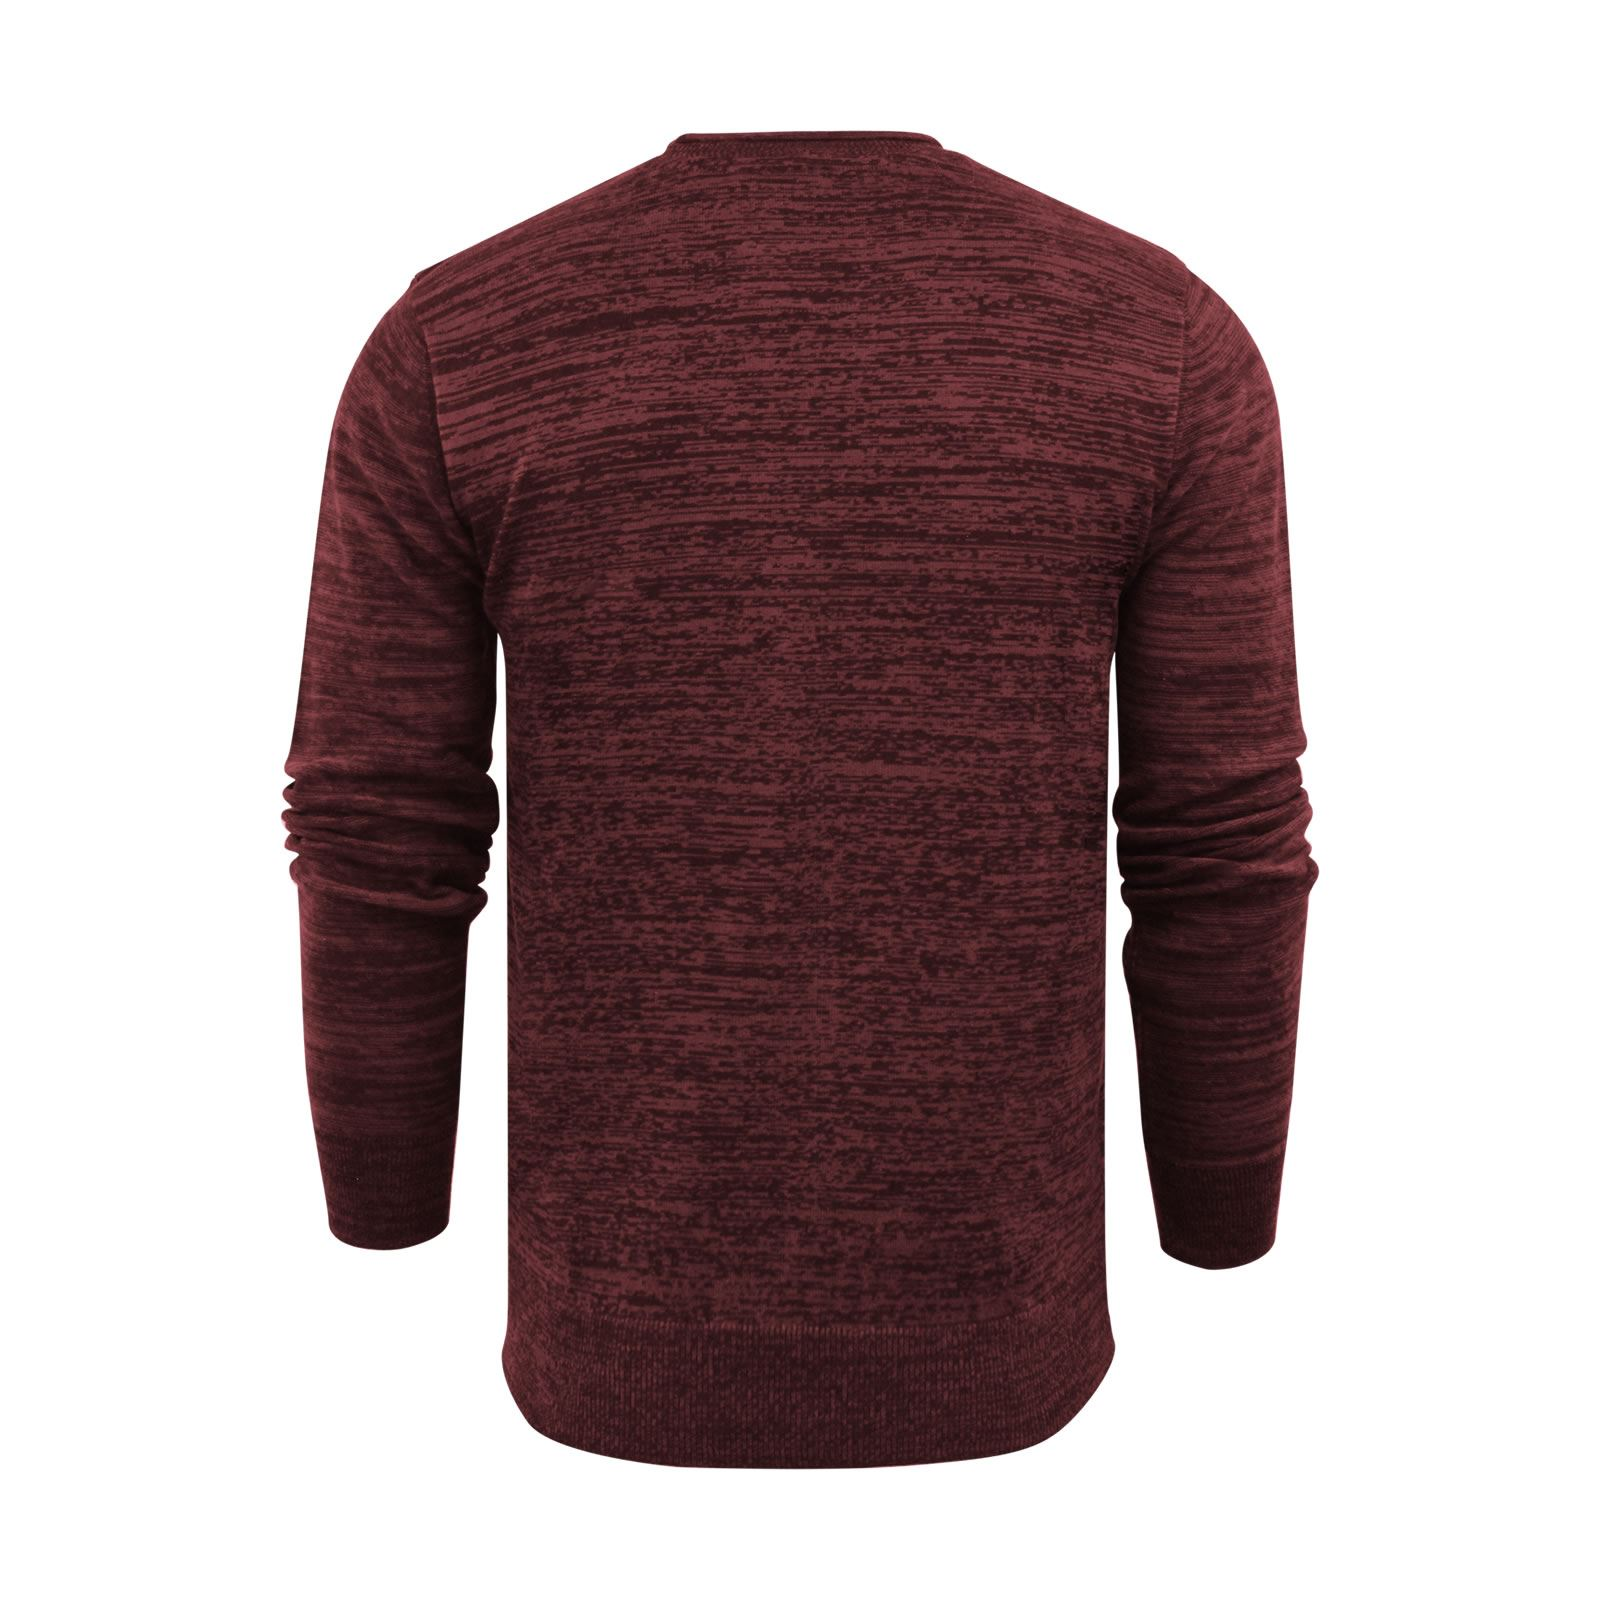 Mens-Jumper-Brave-Soul-Knitted-Sweater-In-Various-Styles thumbnail 9